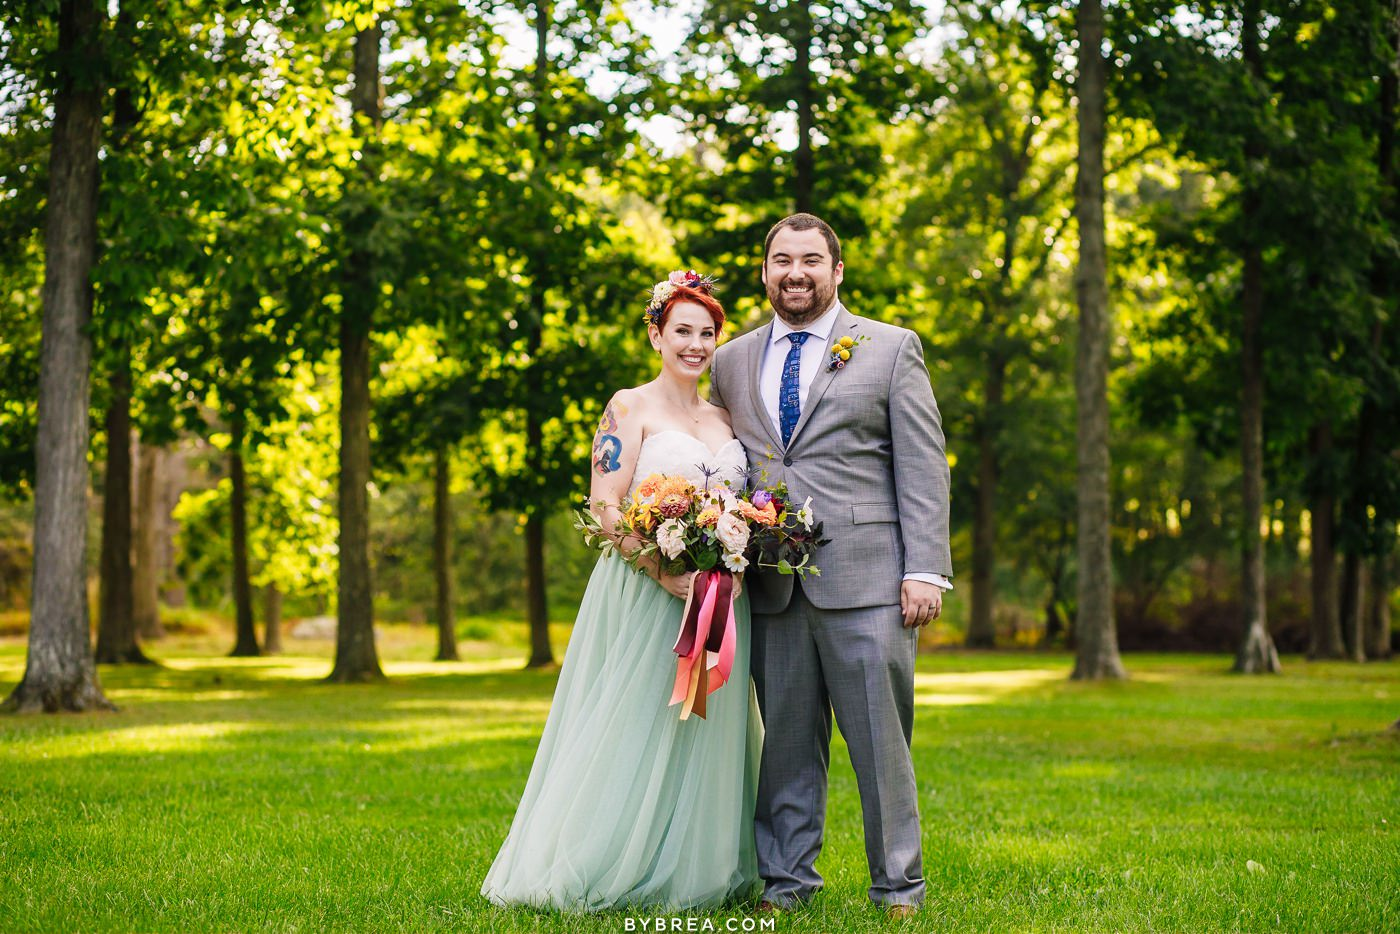 Caboose Farm wedding photo at clearing